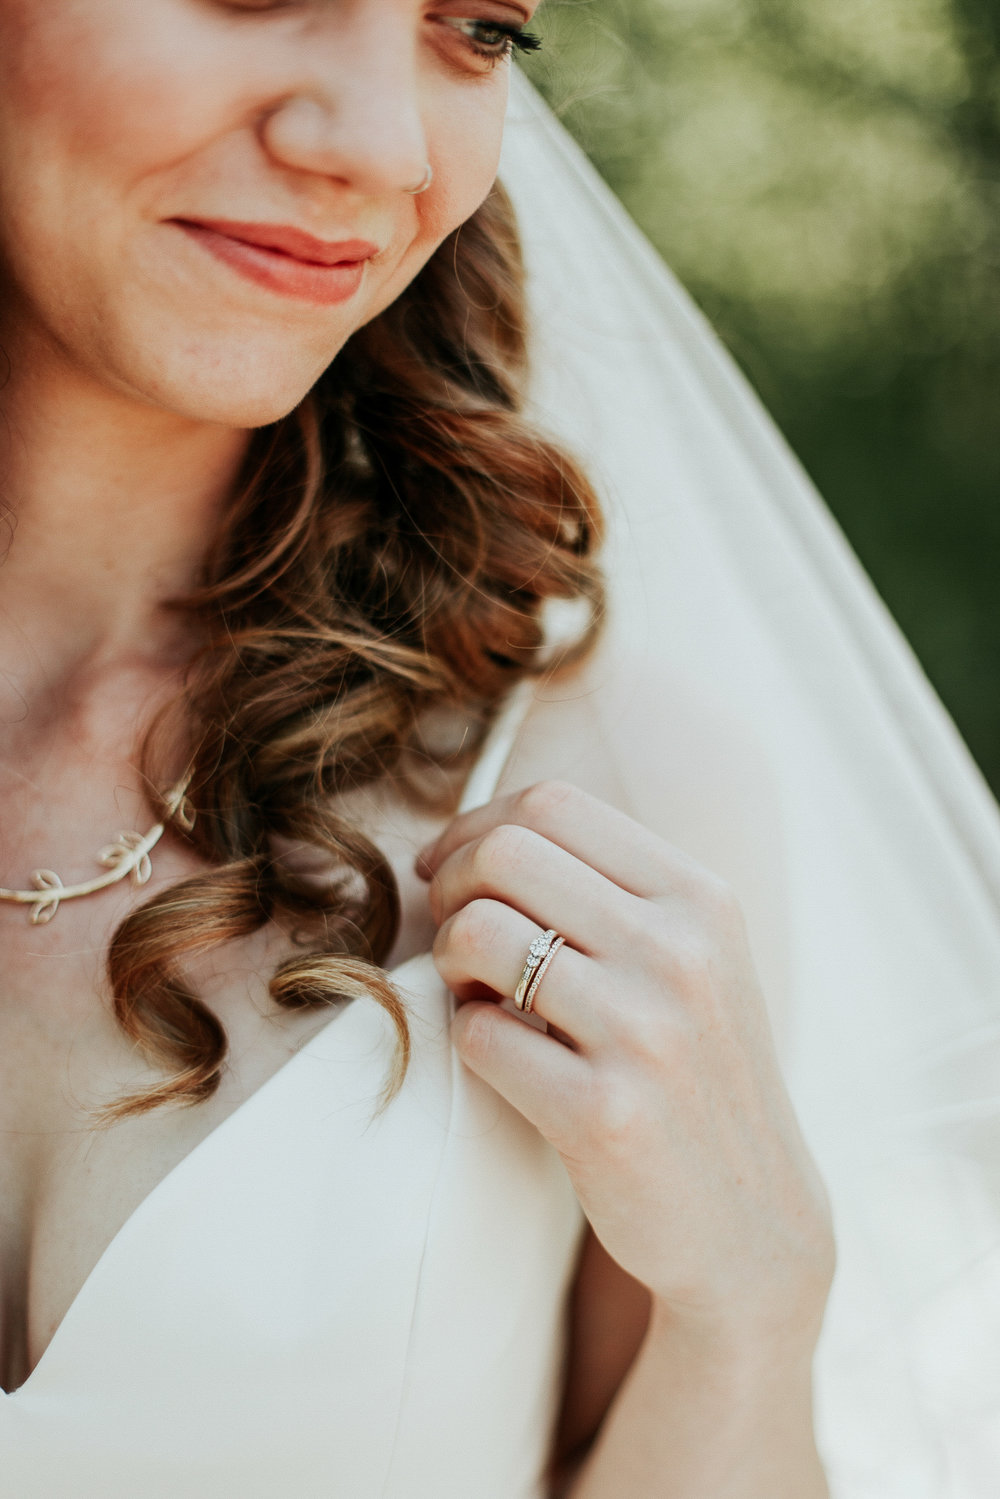 lethbridge-wedding-photographer-love-and-be-loved-photography-dan-tynnea-picture-image-photo-503.jpg